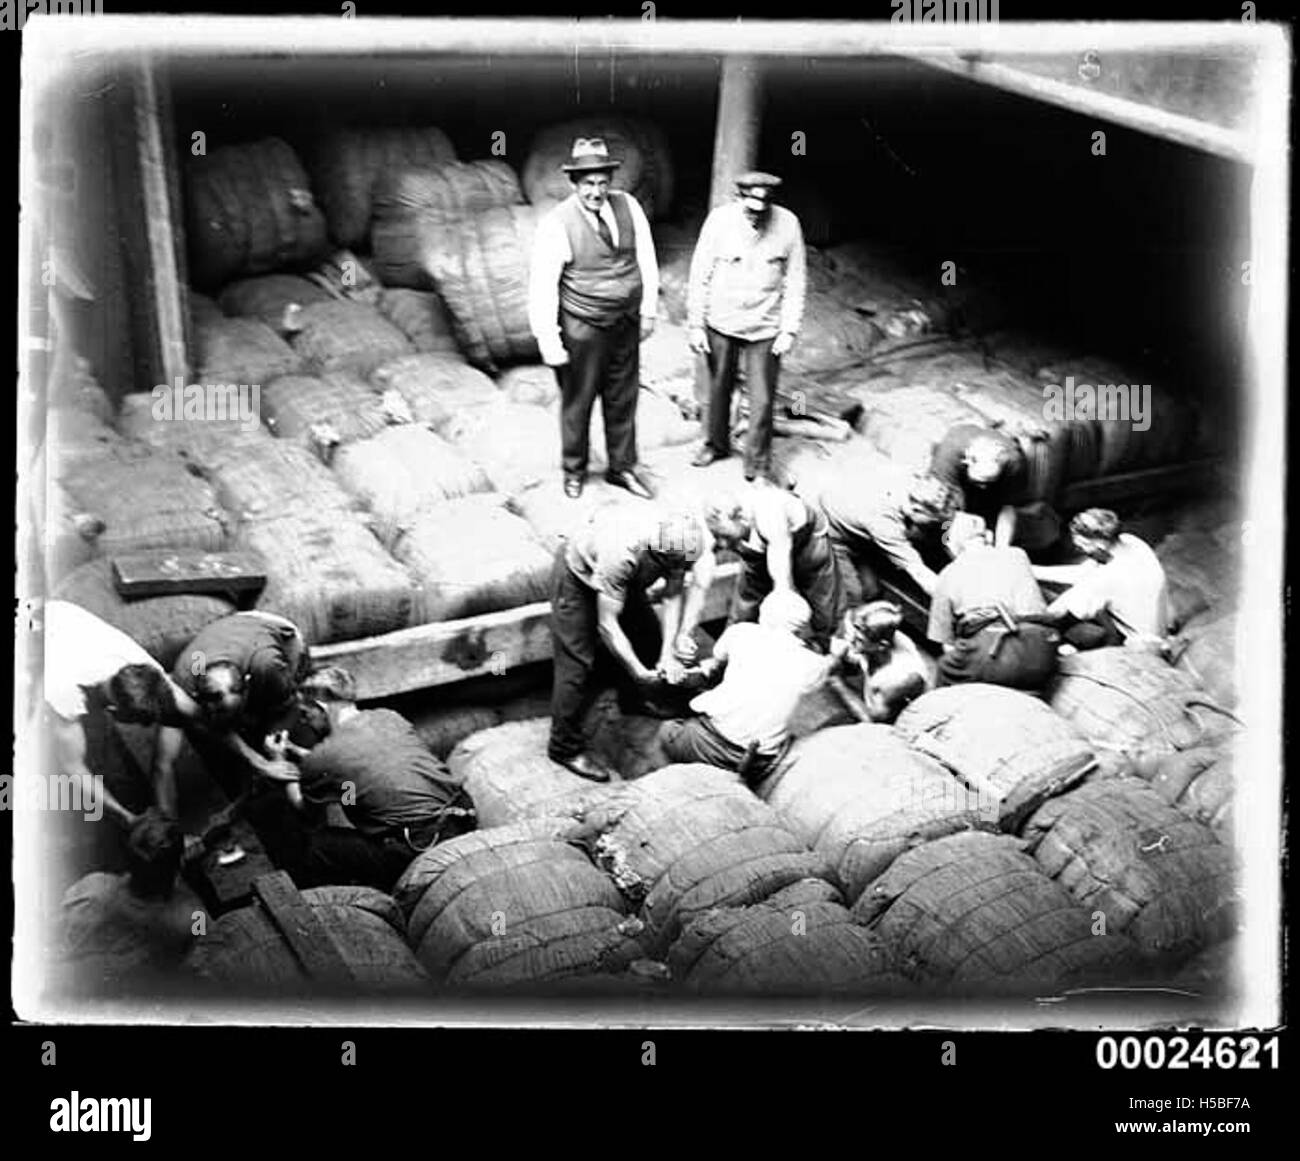 Men packing and securing bales of wool for transport in the hold of the MAGDELENE VINNEN, March 1933 - Stock Image